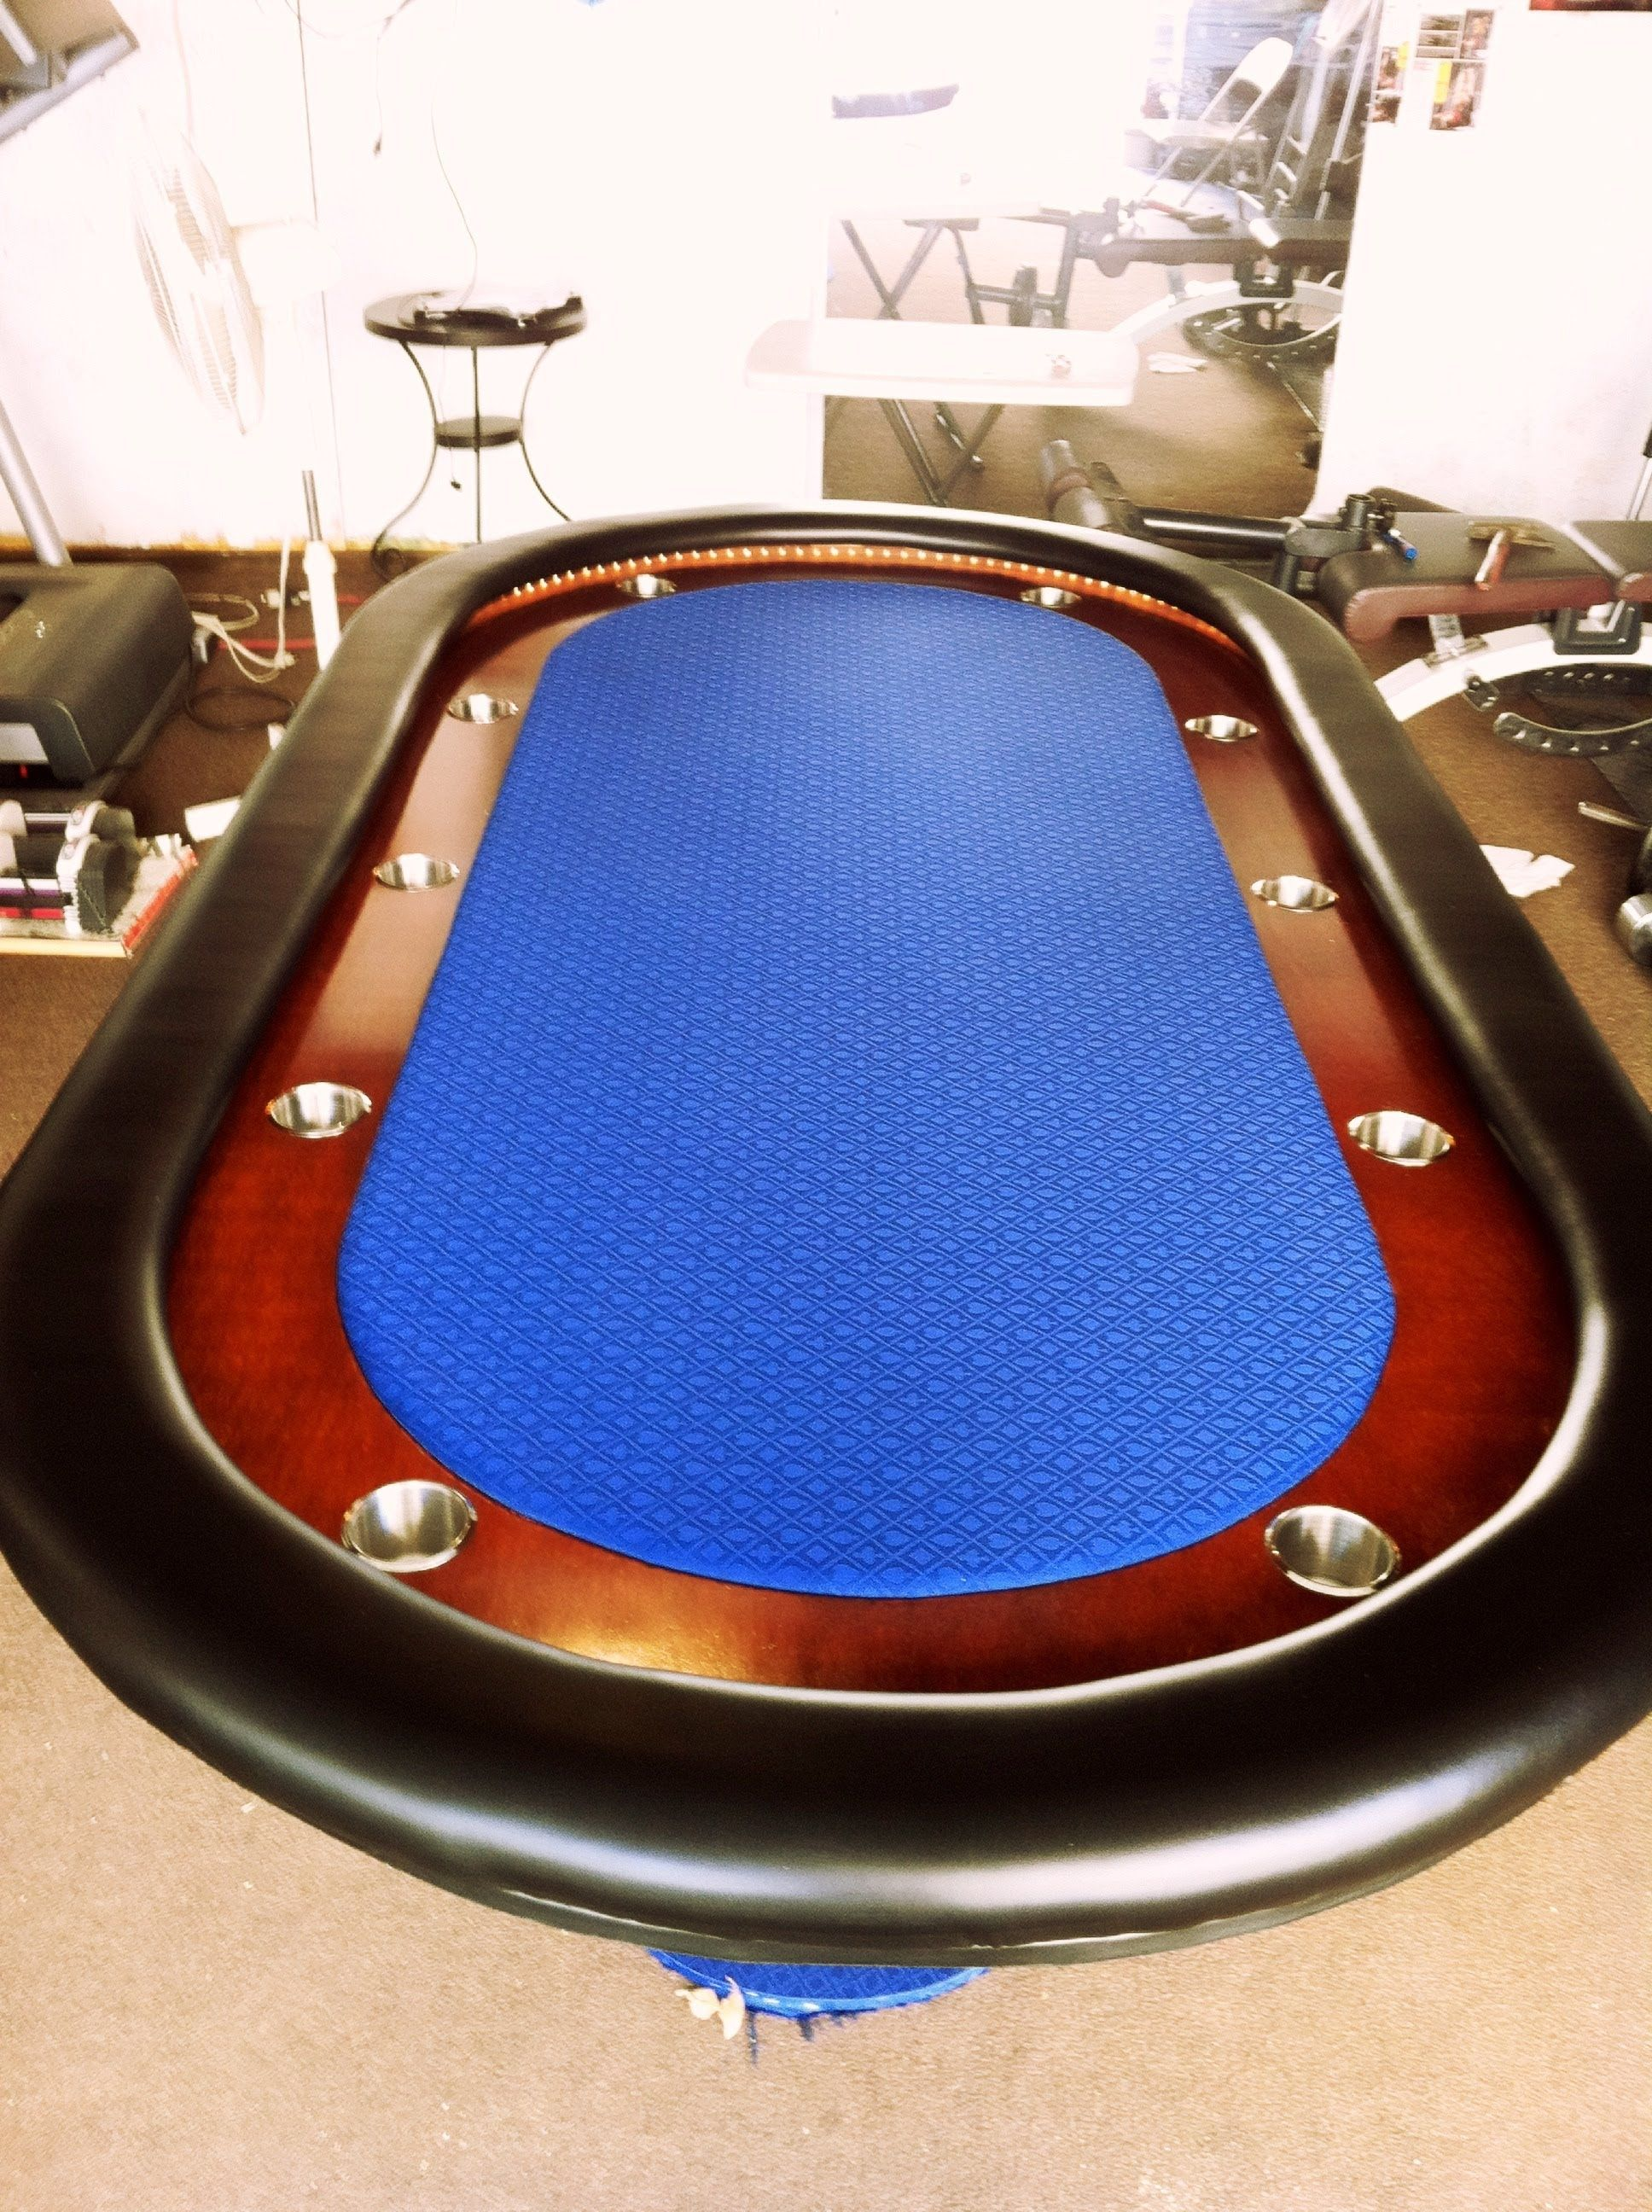 Trademark Poker Table With Folding Legs And Suites Padded Rail